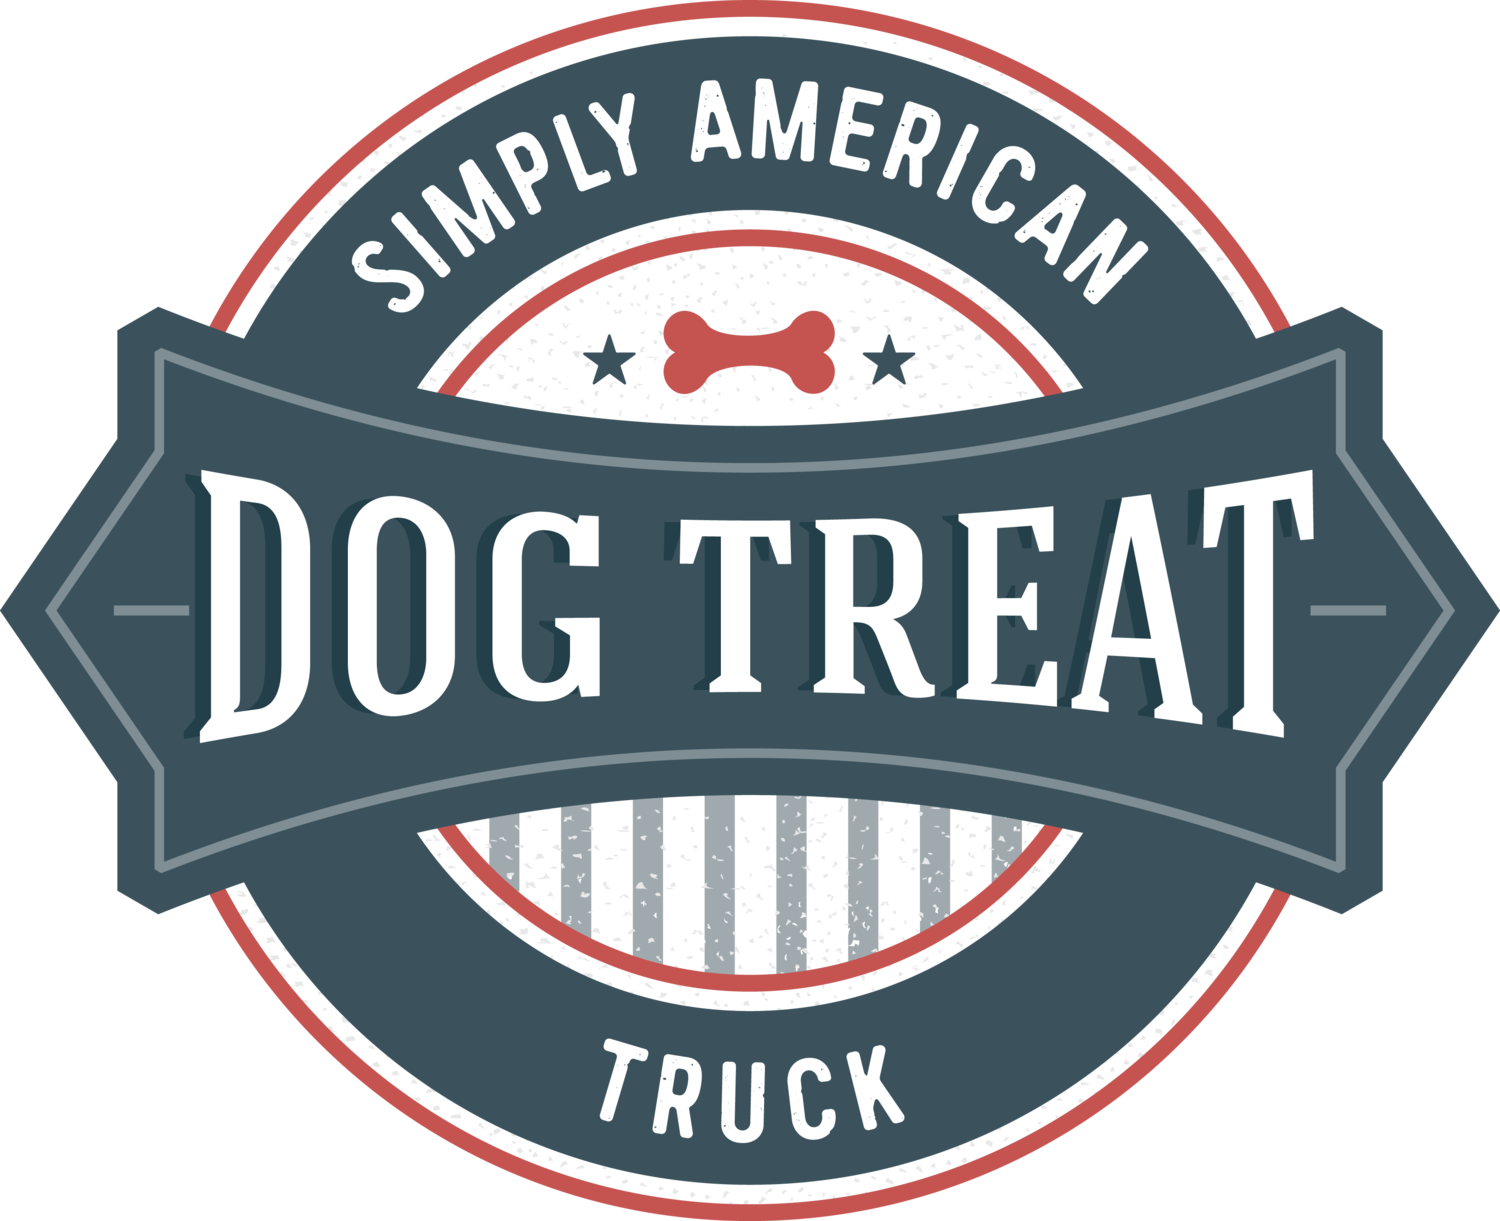 Simply American Dog Treat Truck